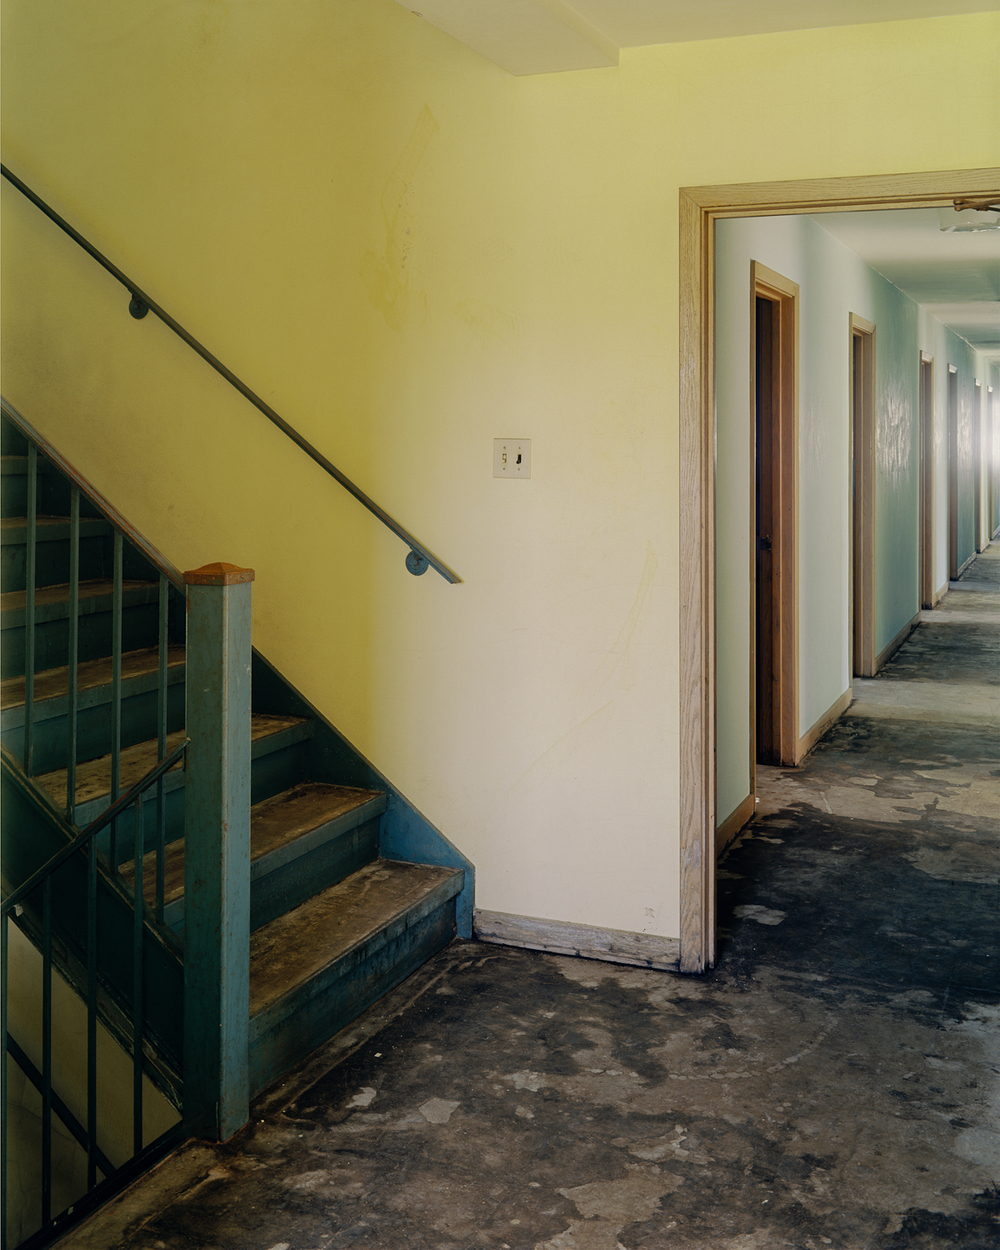 Stairwell and hallway, Dormitory Building.